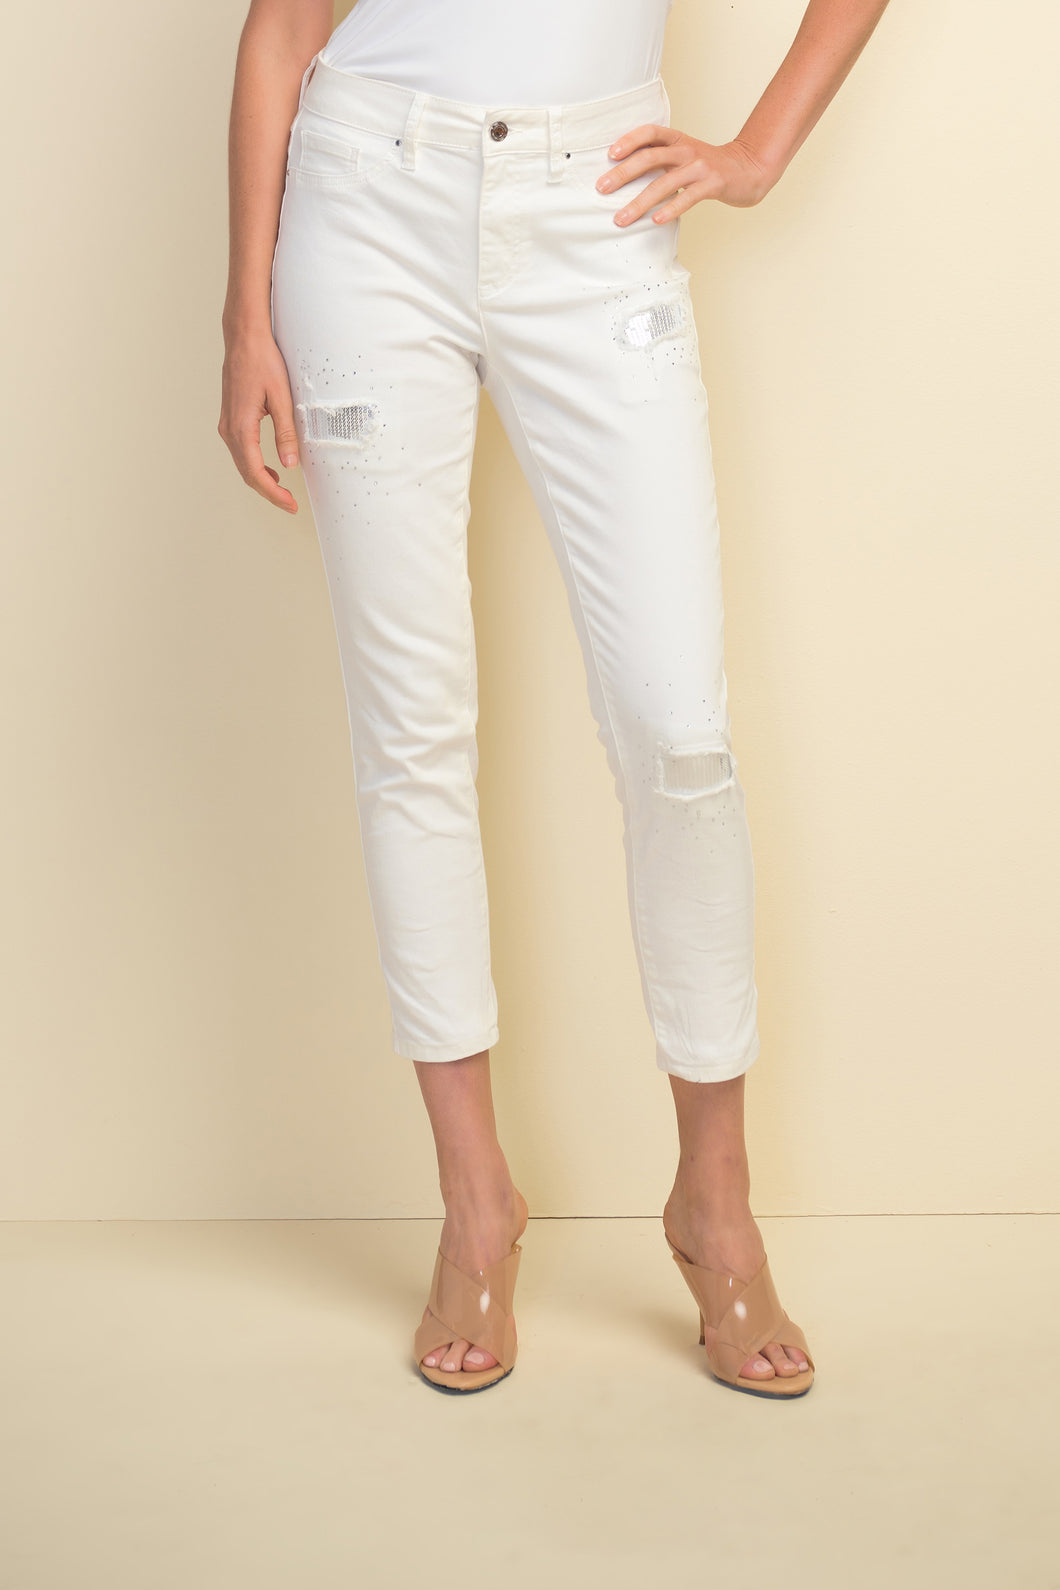 White Embellished Jeans by Joseph Ribkoff available in plus sizes